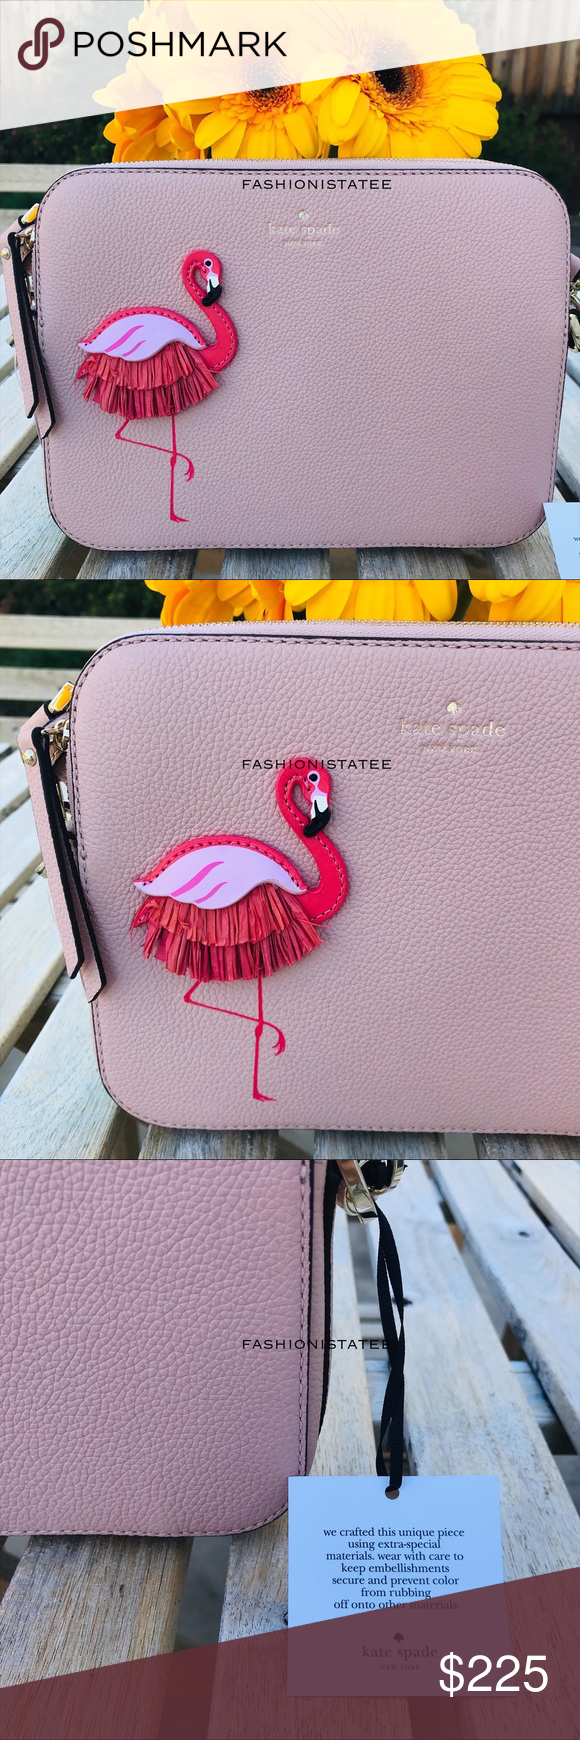 By The Pool Flamingo Kate Spade Kate Spade Camera By The Pool Flamingo Crossbody Kate Spade By The